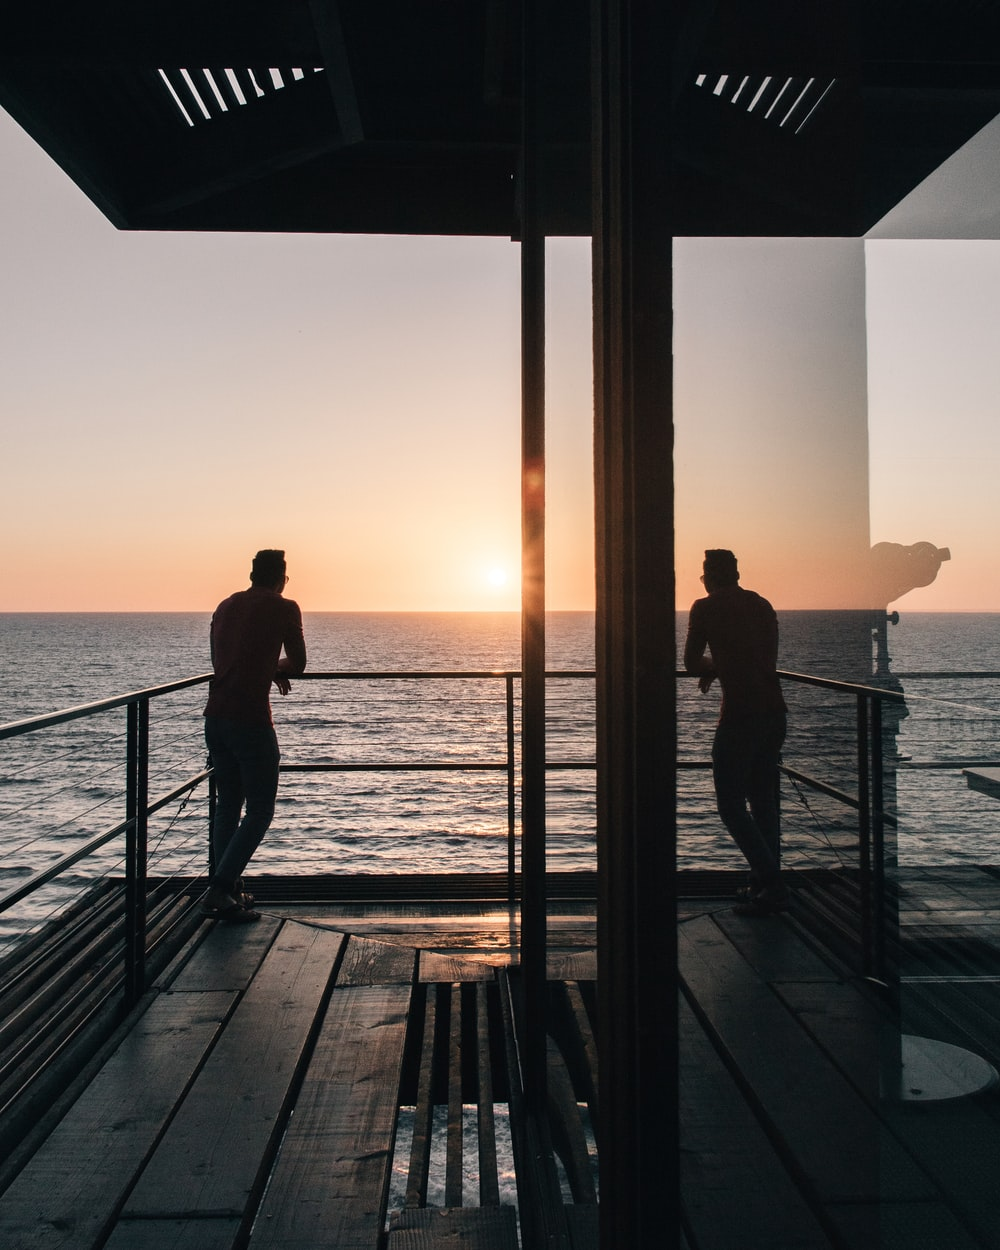 silhouette of man standing on gray stainless steel railing looking at sunset